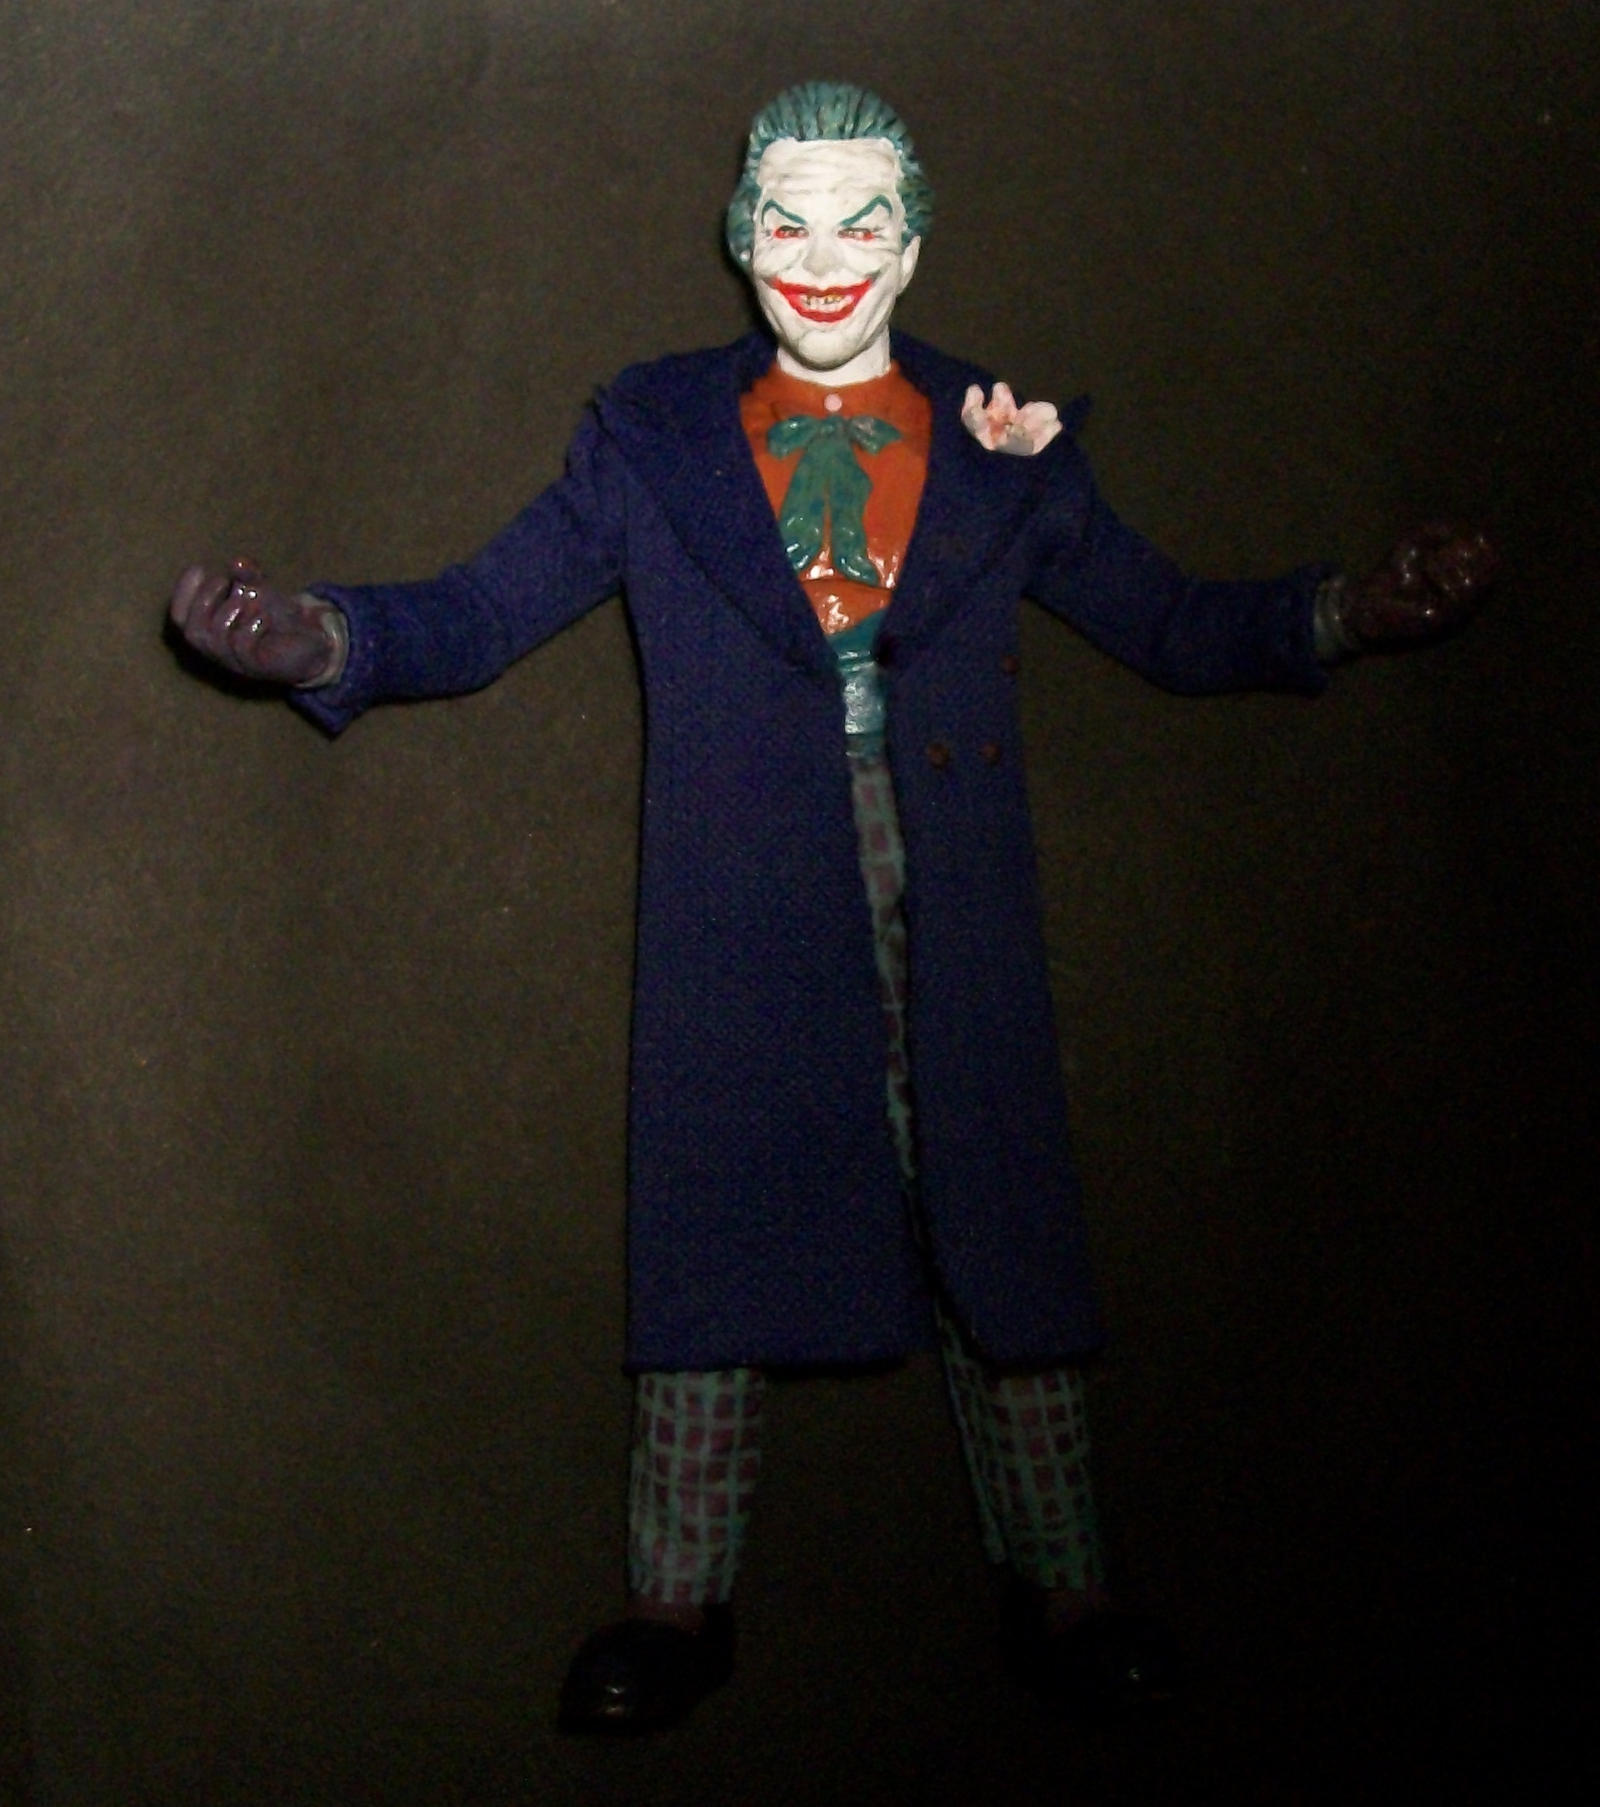 Jack Nicholson Joker From Batman Custom 7.5 Inch By Jhonny